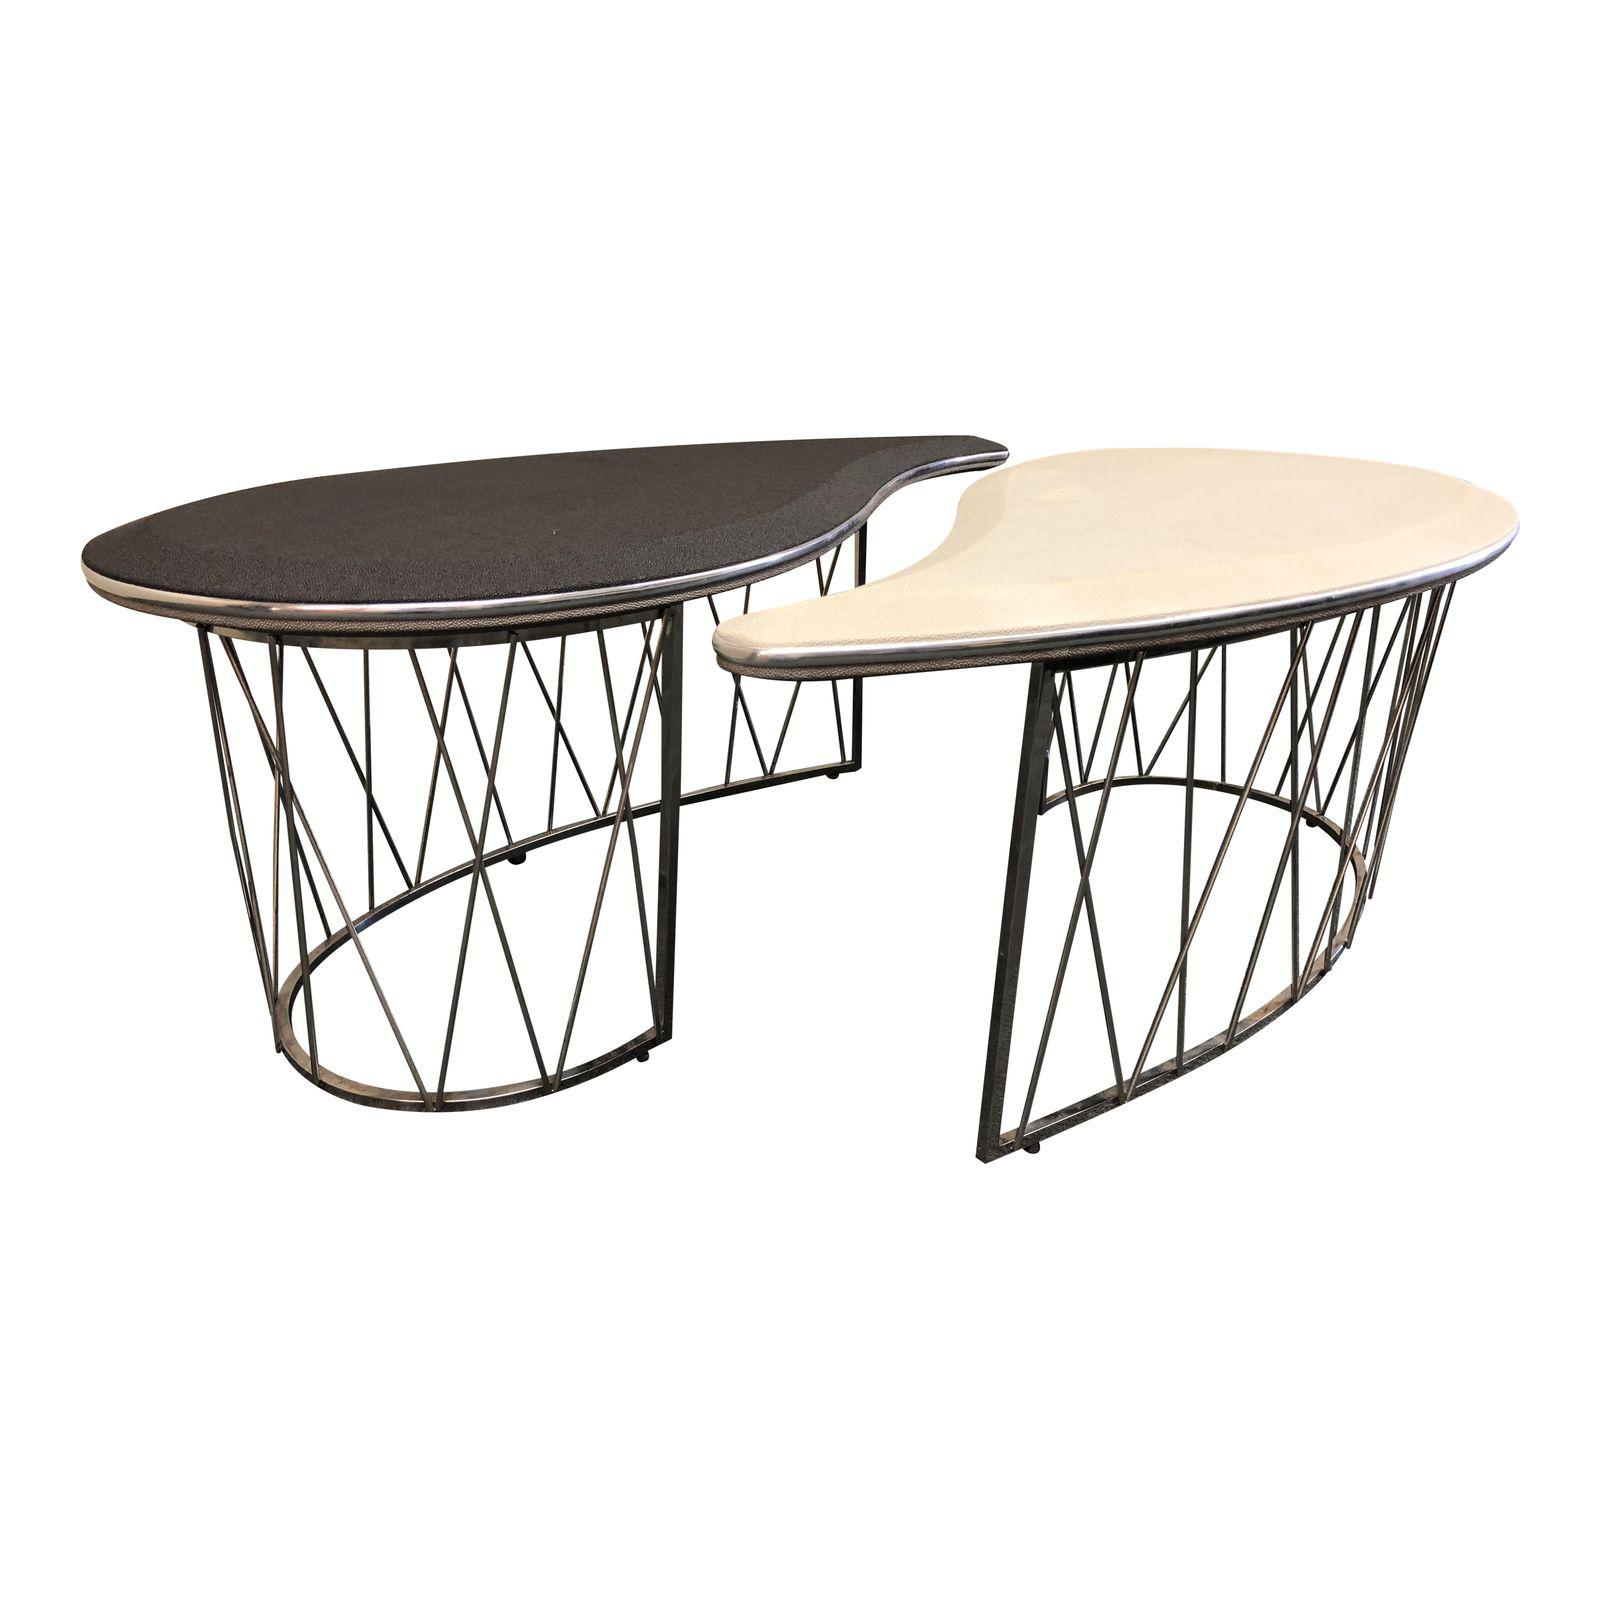 Michael Amini Yin Yang Cocktail Tables A Pair Design Plus Gallery